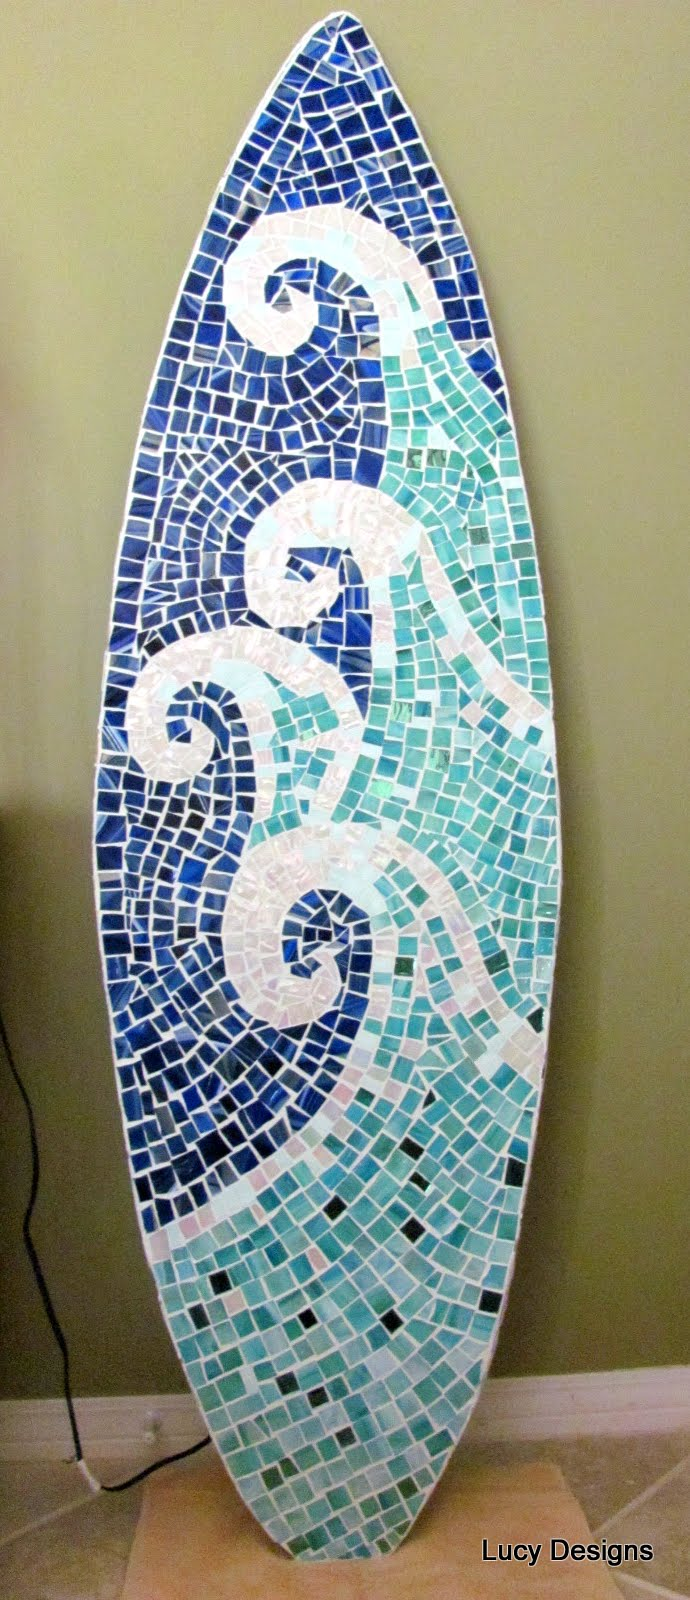 17 best images about mosaic on pinterest dolphins blue mosaic and stained glass patterns mosaic - Mosaic Design Ideas